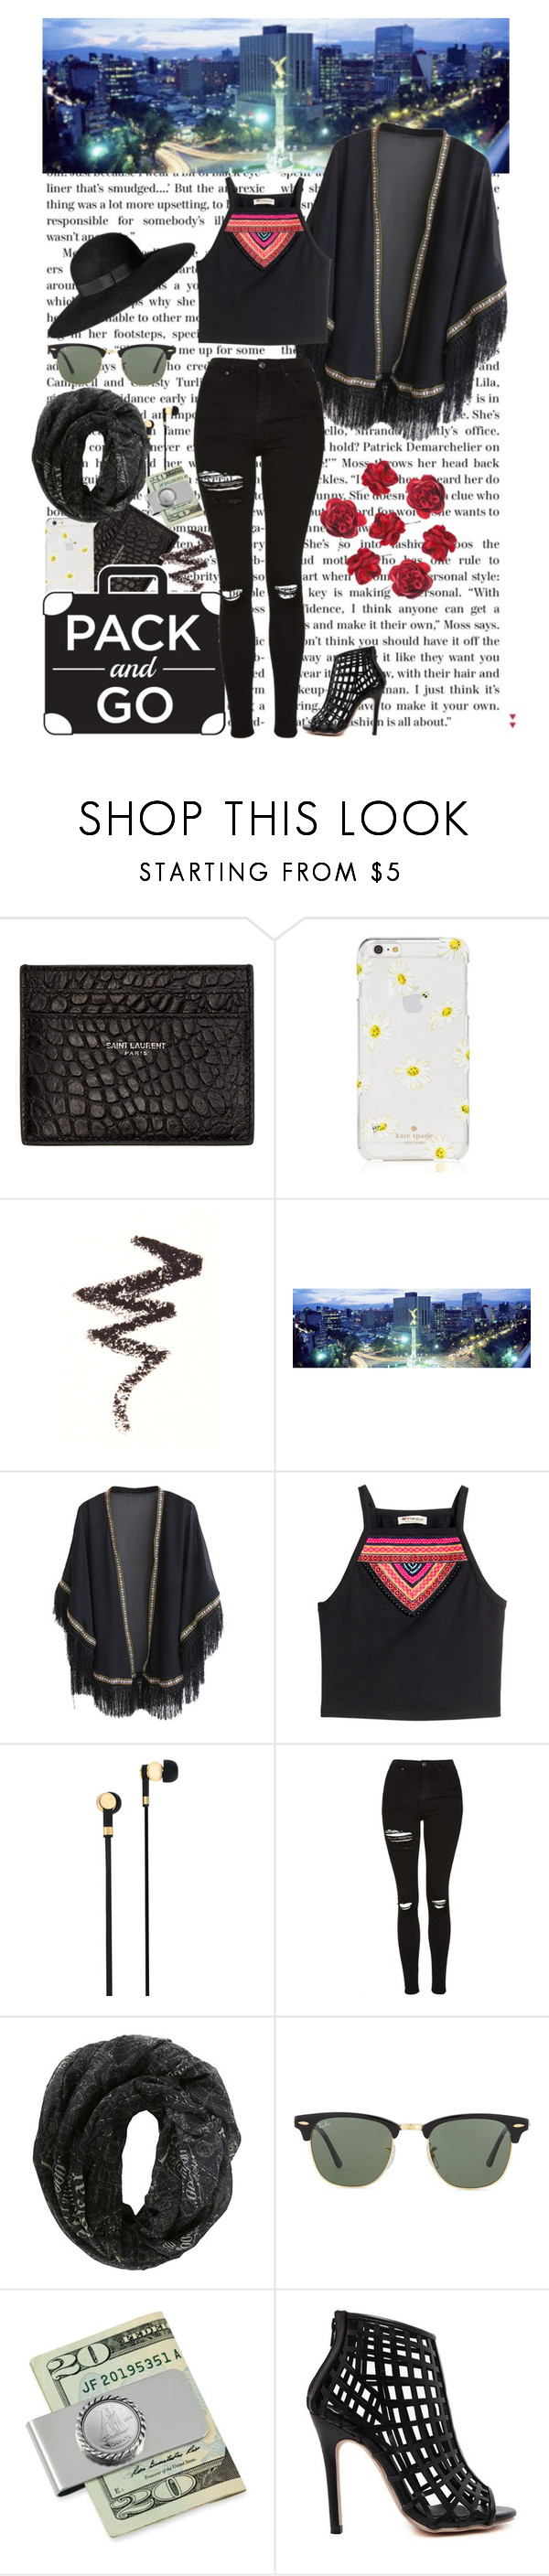 """""""Not this choice"""" by katiemcqueen ❤ liked on Polyvore featuring Yves Saint Laurent, Kate Spade, NYX, WithChic, H&M, Master & Dynamic, Topshop, Ray-Ban and American Coin Treasures"""